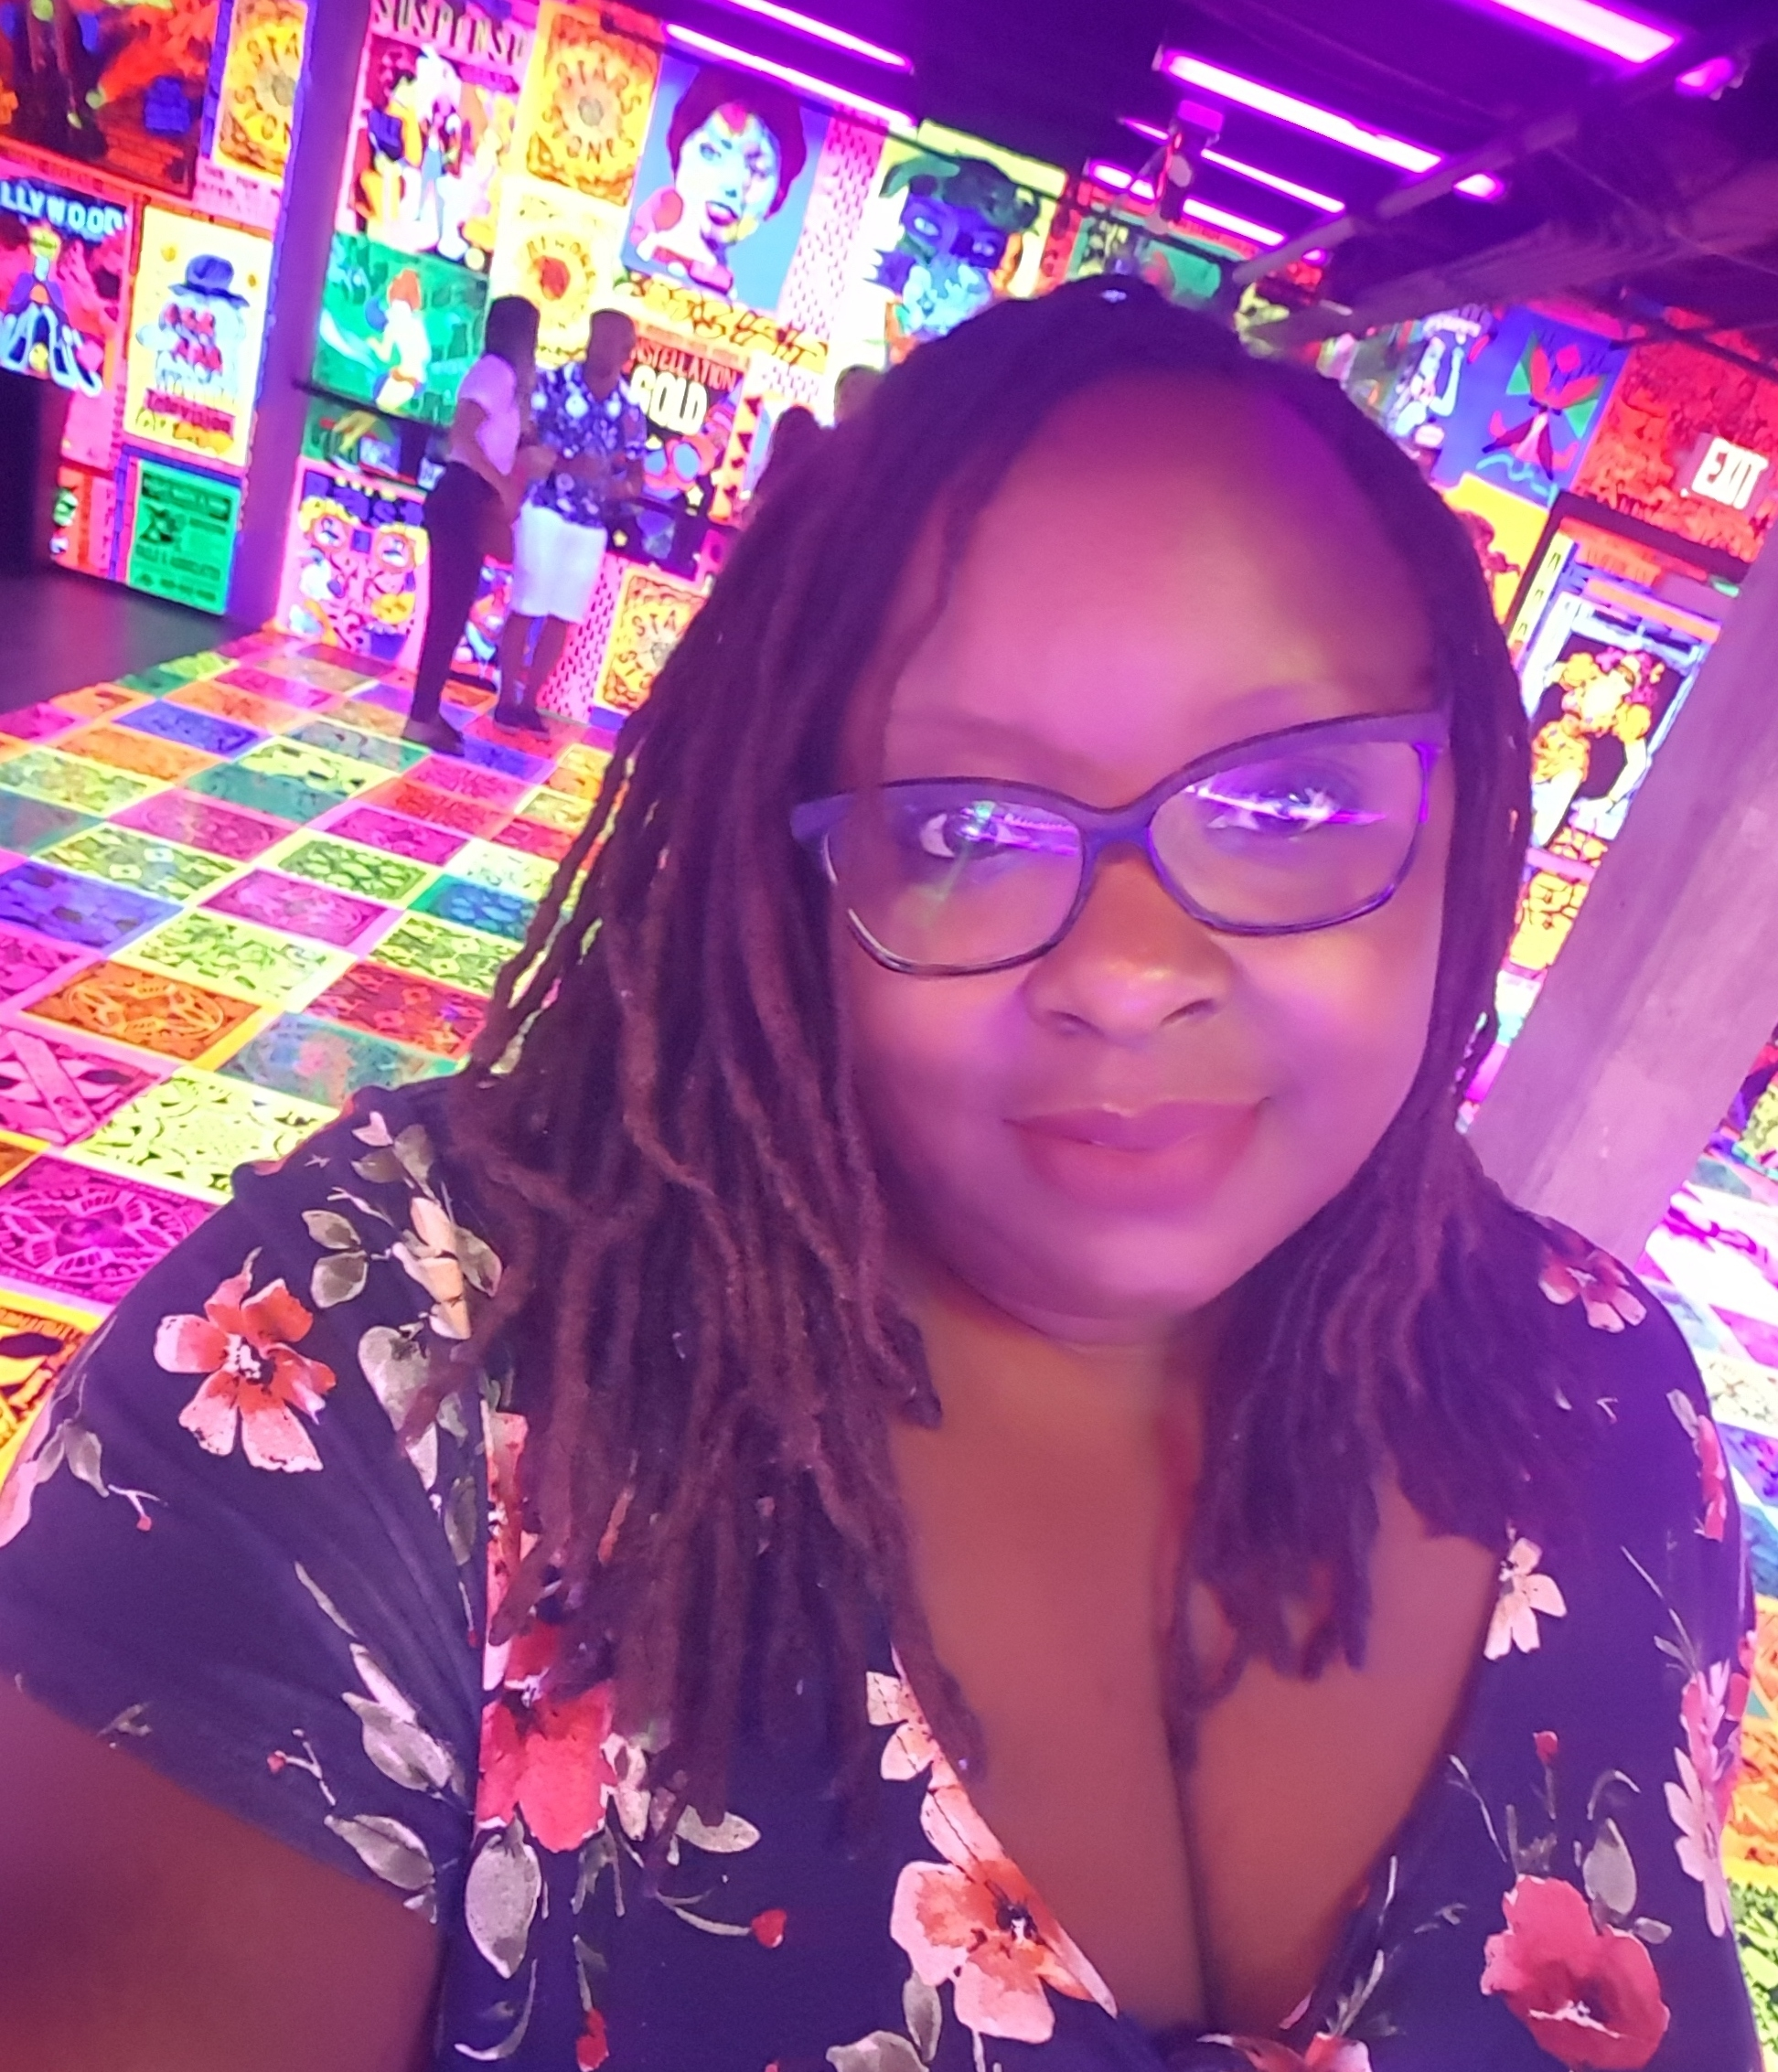 This was the cutest Bar/Arcade in Downtown Detroit. It was all fluorescent! It's called Deluxx Fluxx and it's located in the Belt.